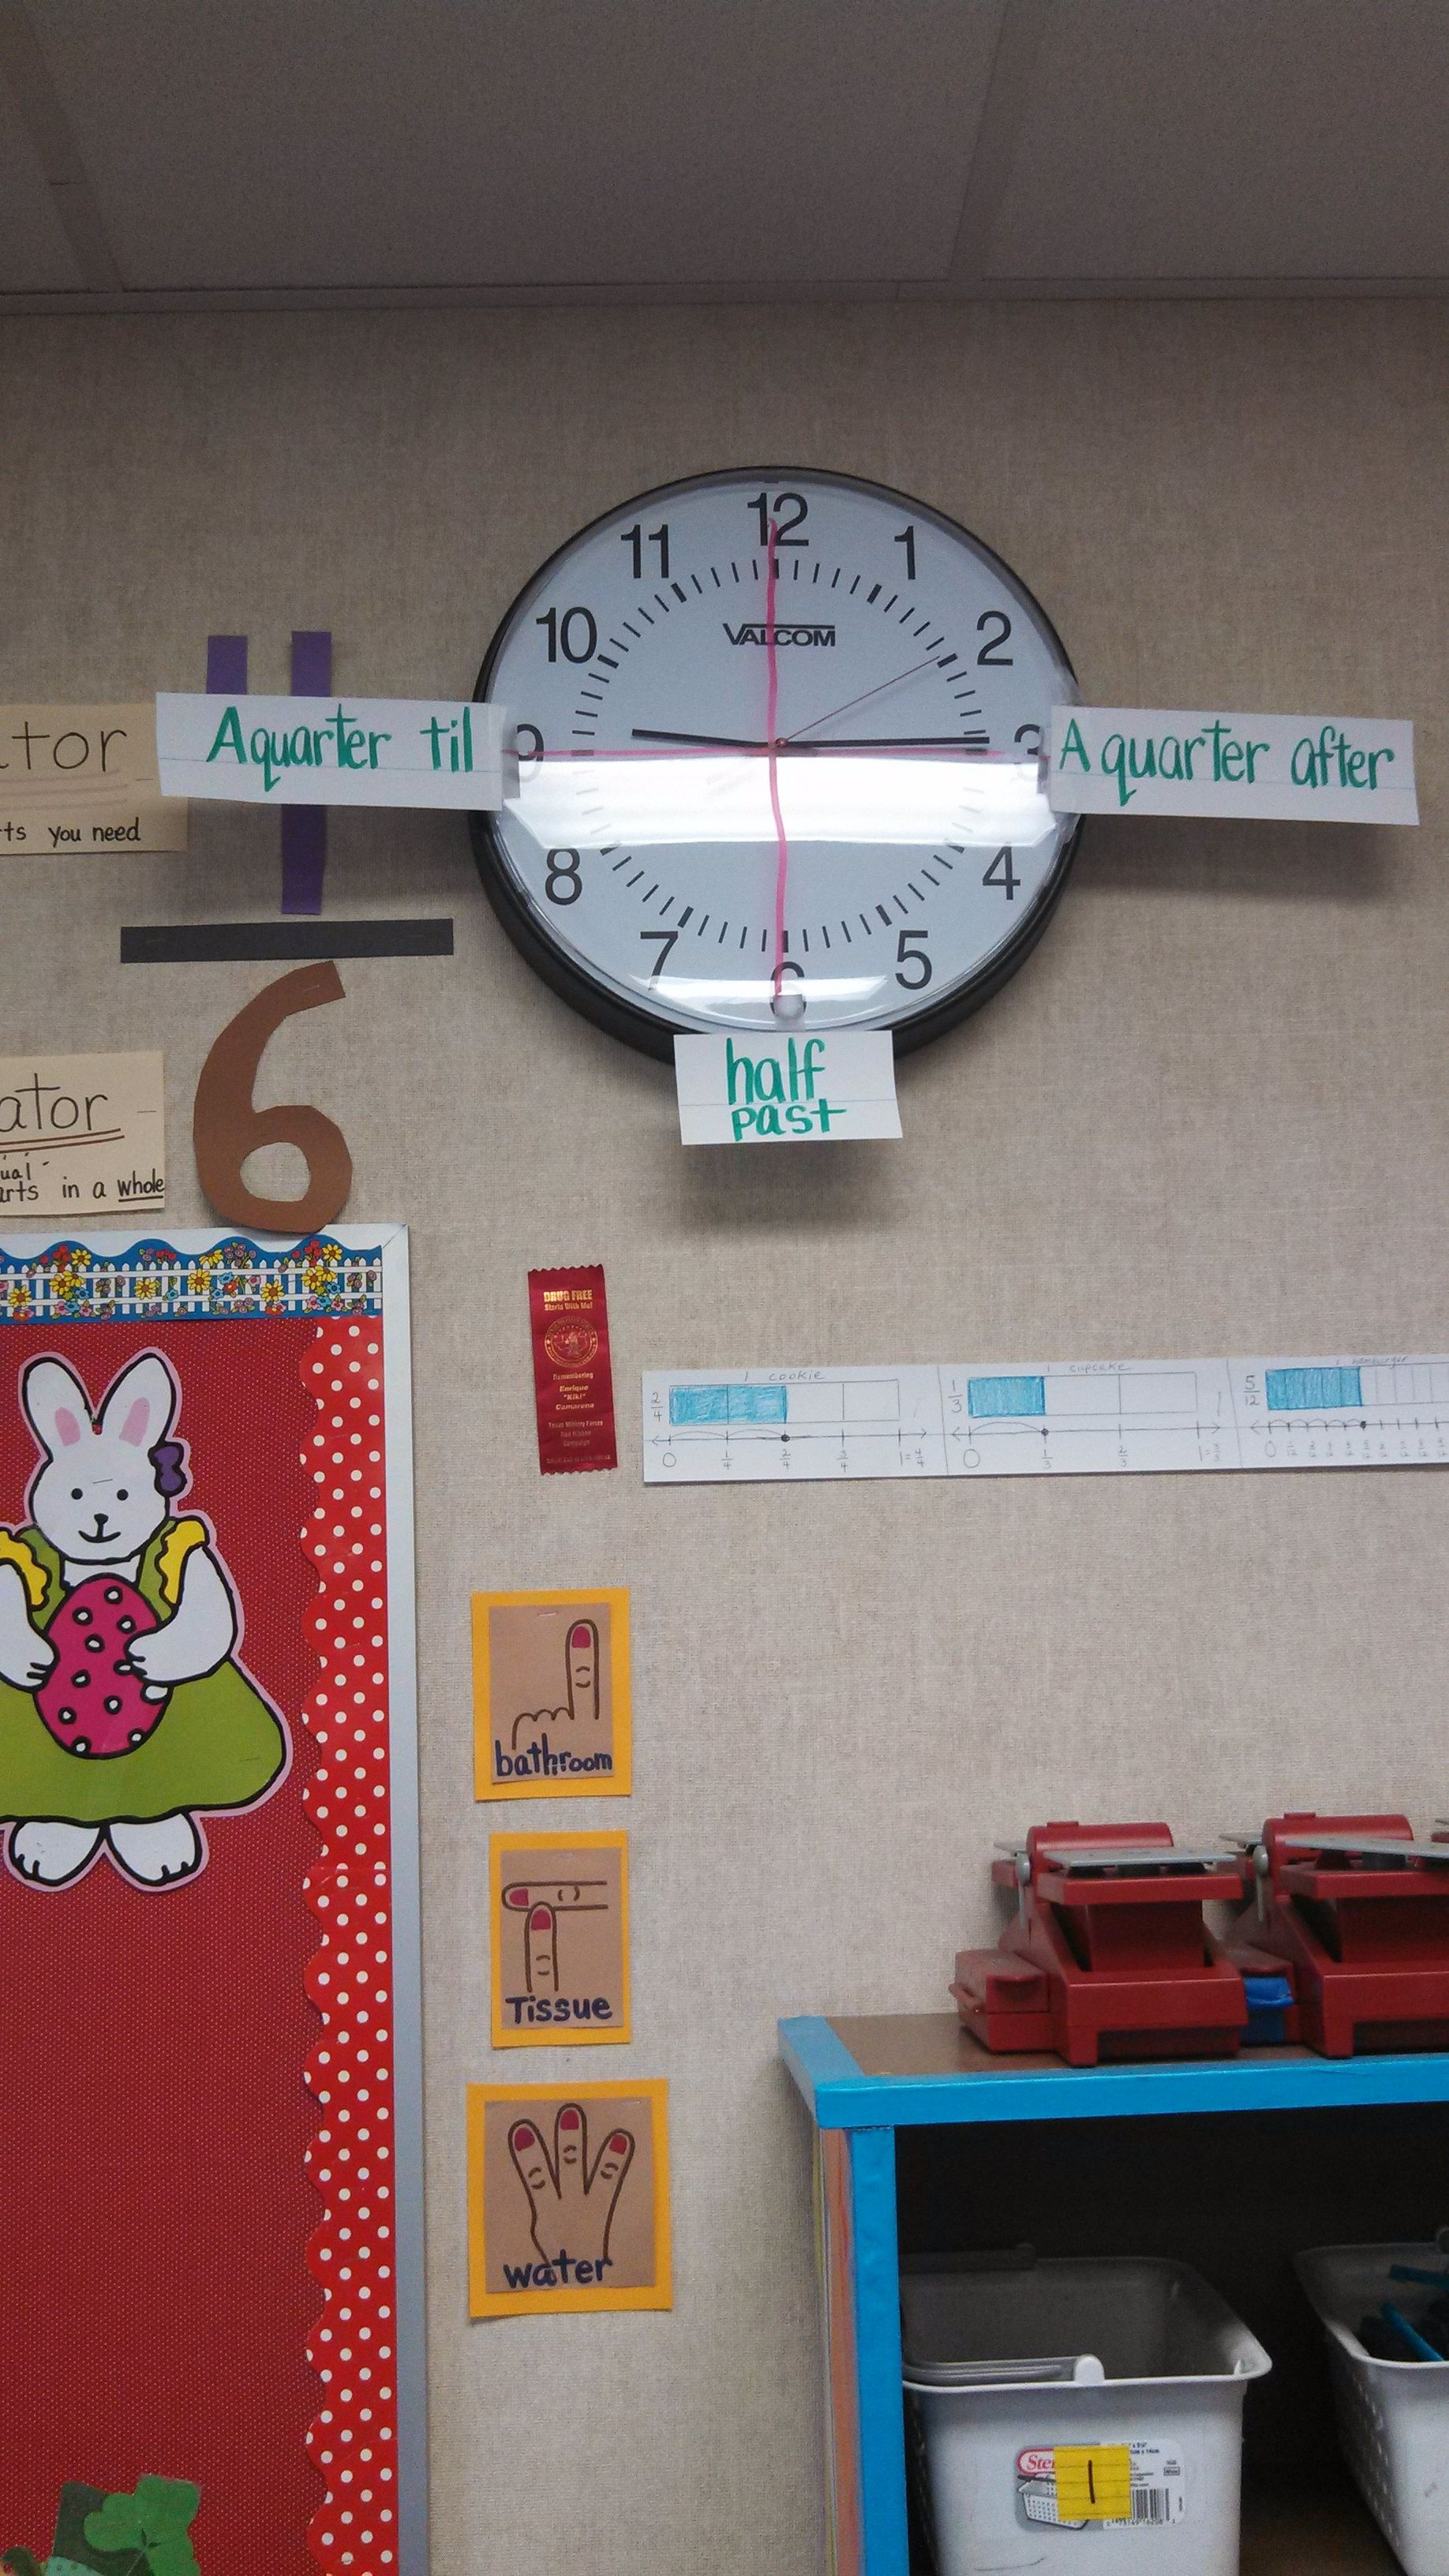 """This clock has the main time """"checkpoints"""" labeled on it: a quarter til, half past, and a quarter after. This would be a great thing to label on your classroom clock in order to help the students learn about time and how to tell time. I would definitely have this in my classroom for a third grade level. Having it posted on the clock high on the wall would allow any student to look at the clock at any given time for help. 5159"""